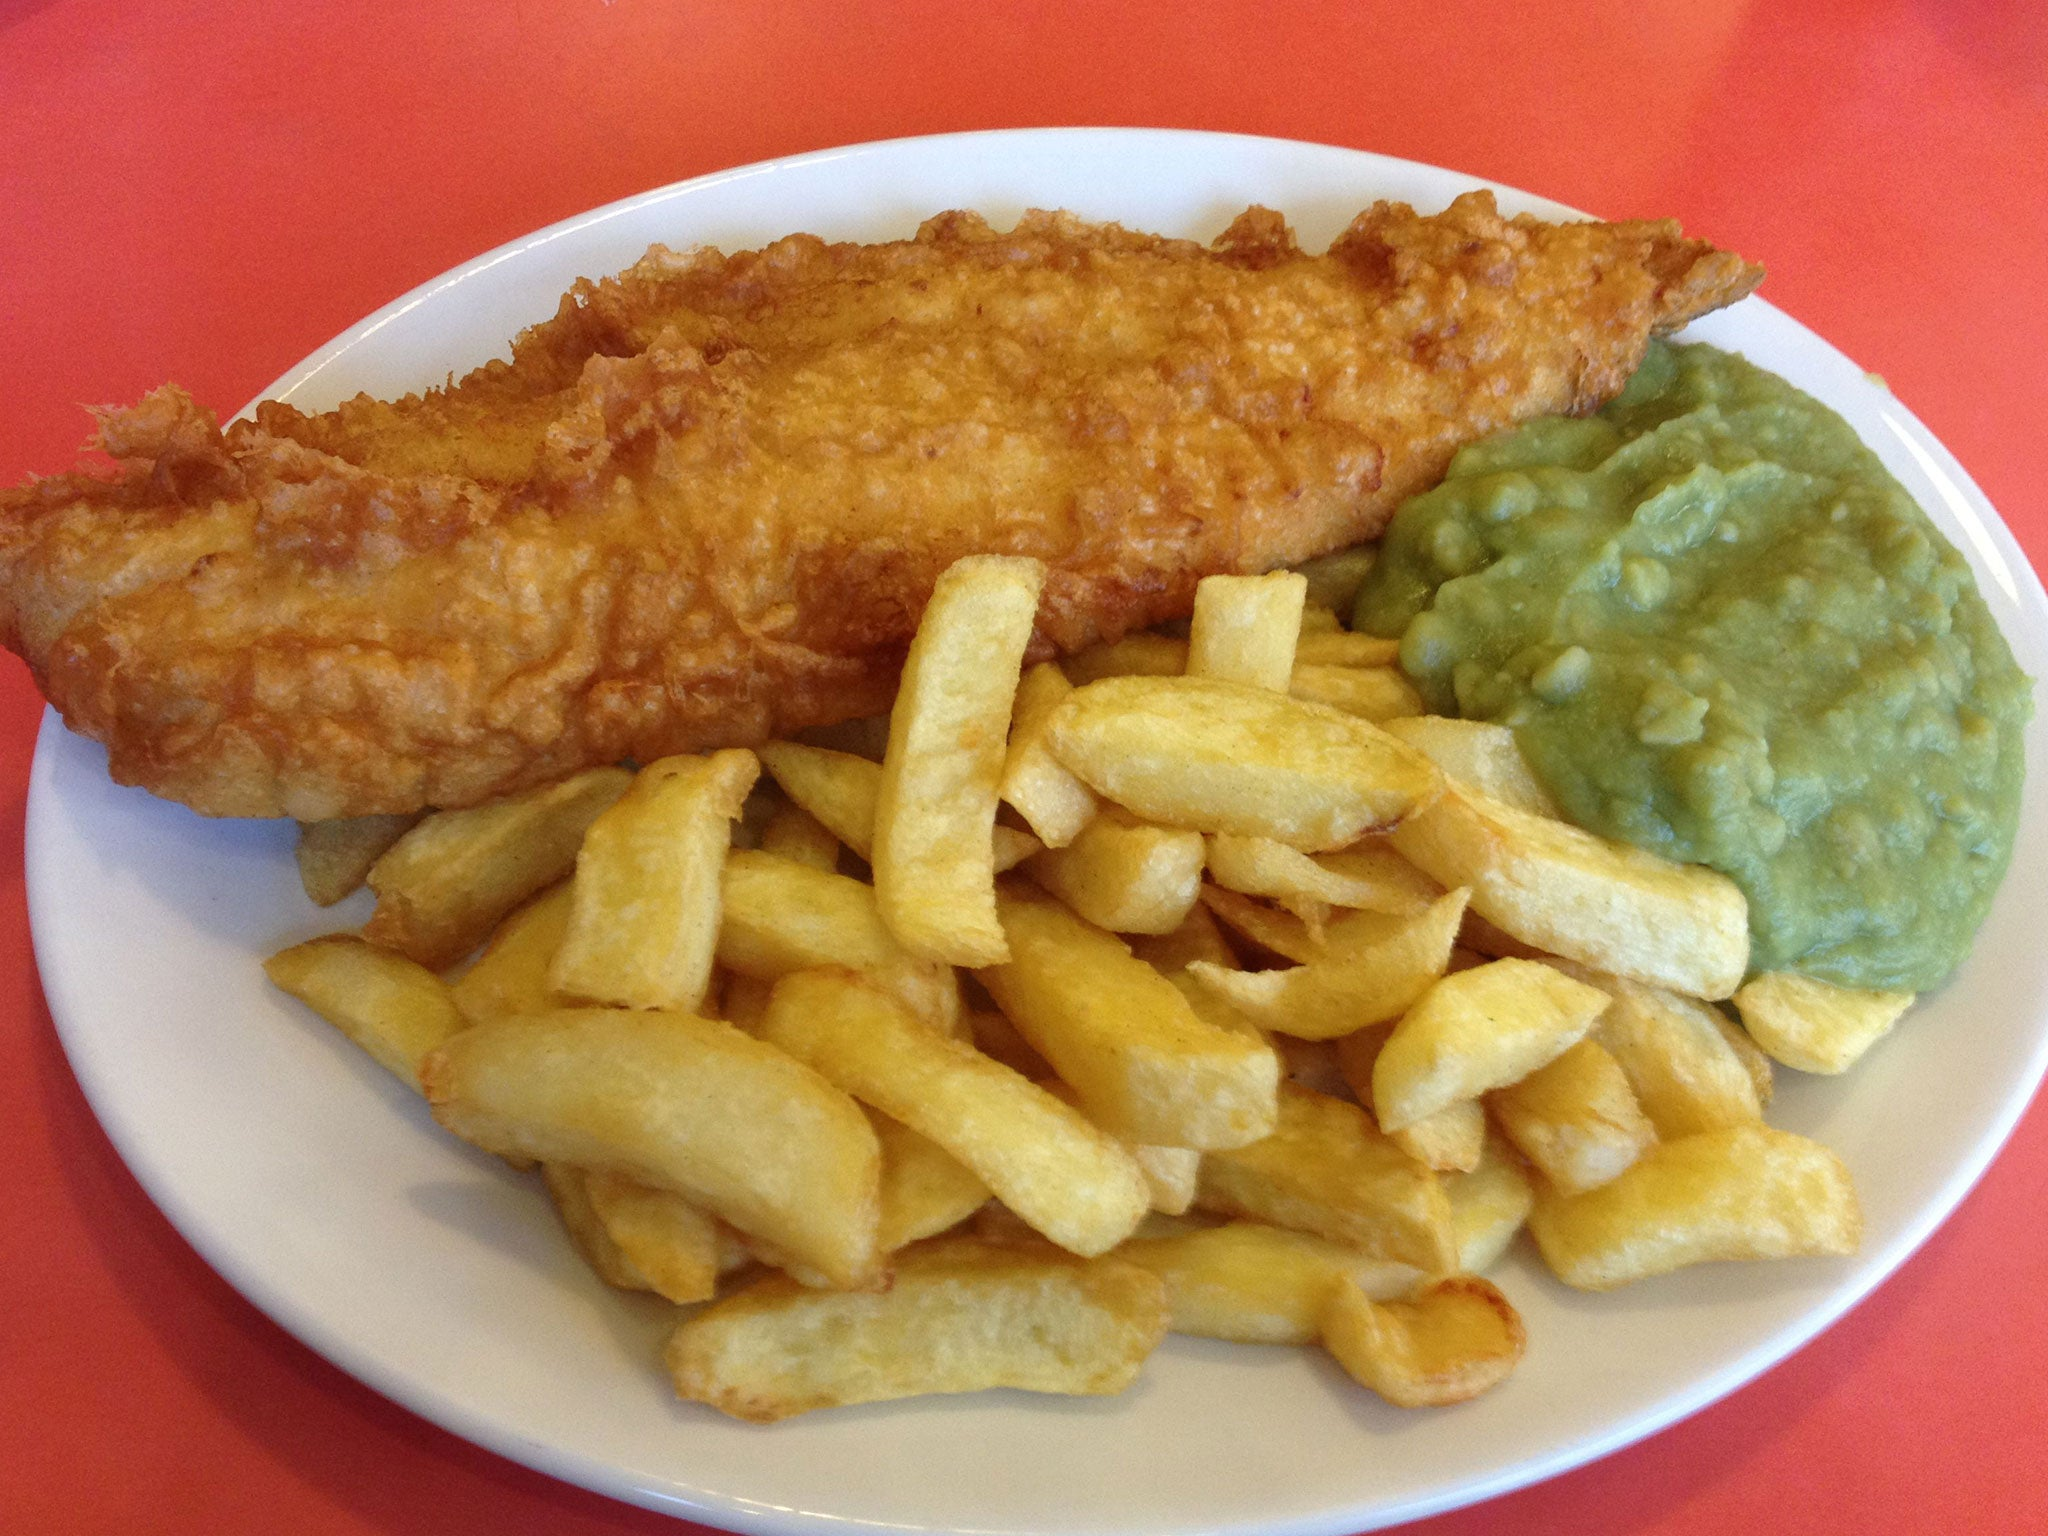 Fish and chips came from Venice, Italian school chiefs tell pupils ...